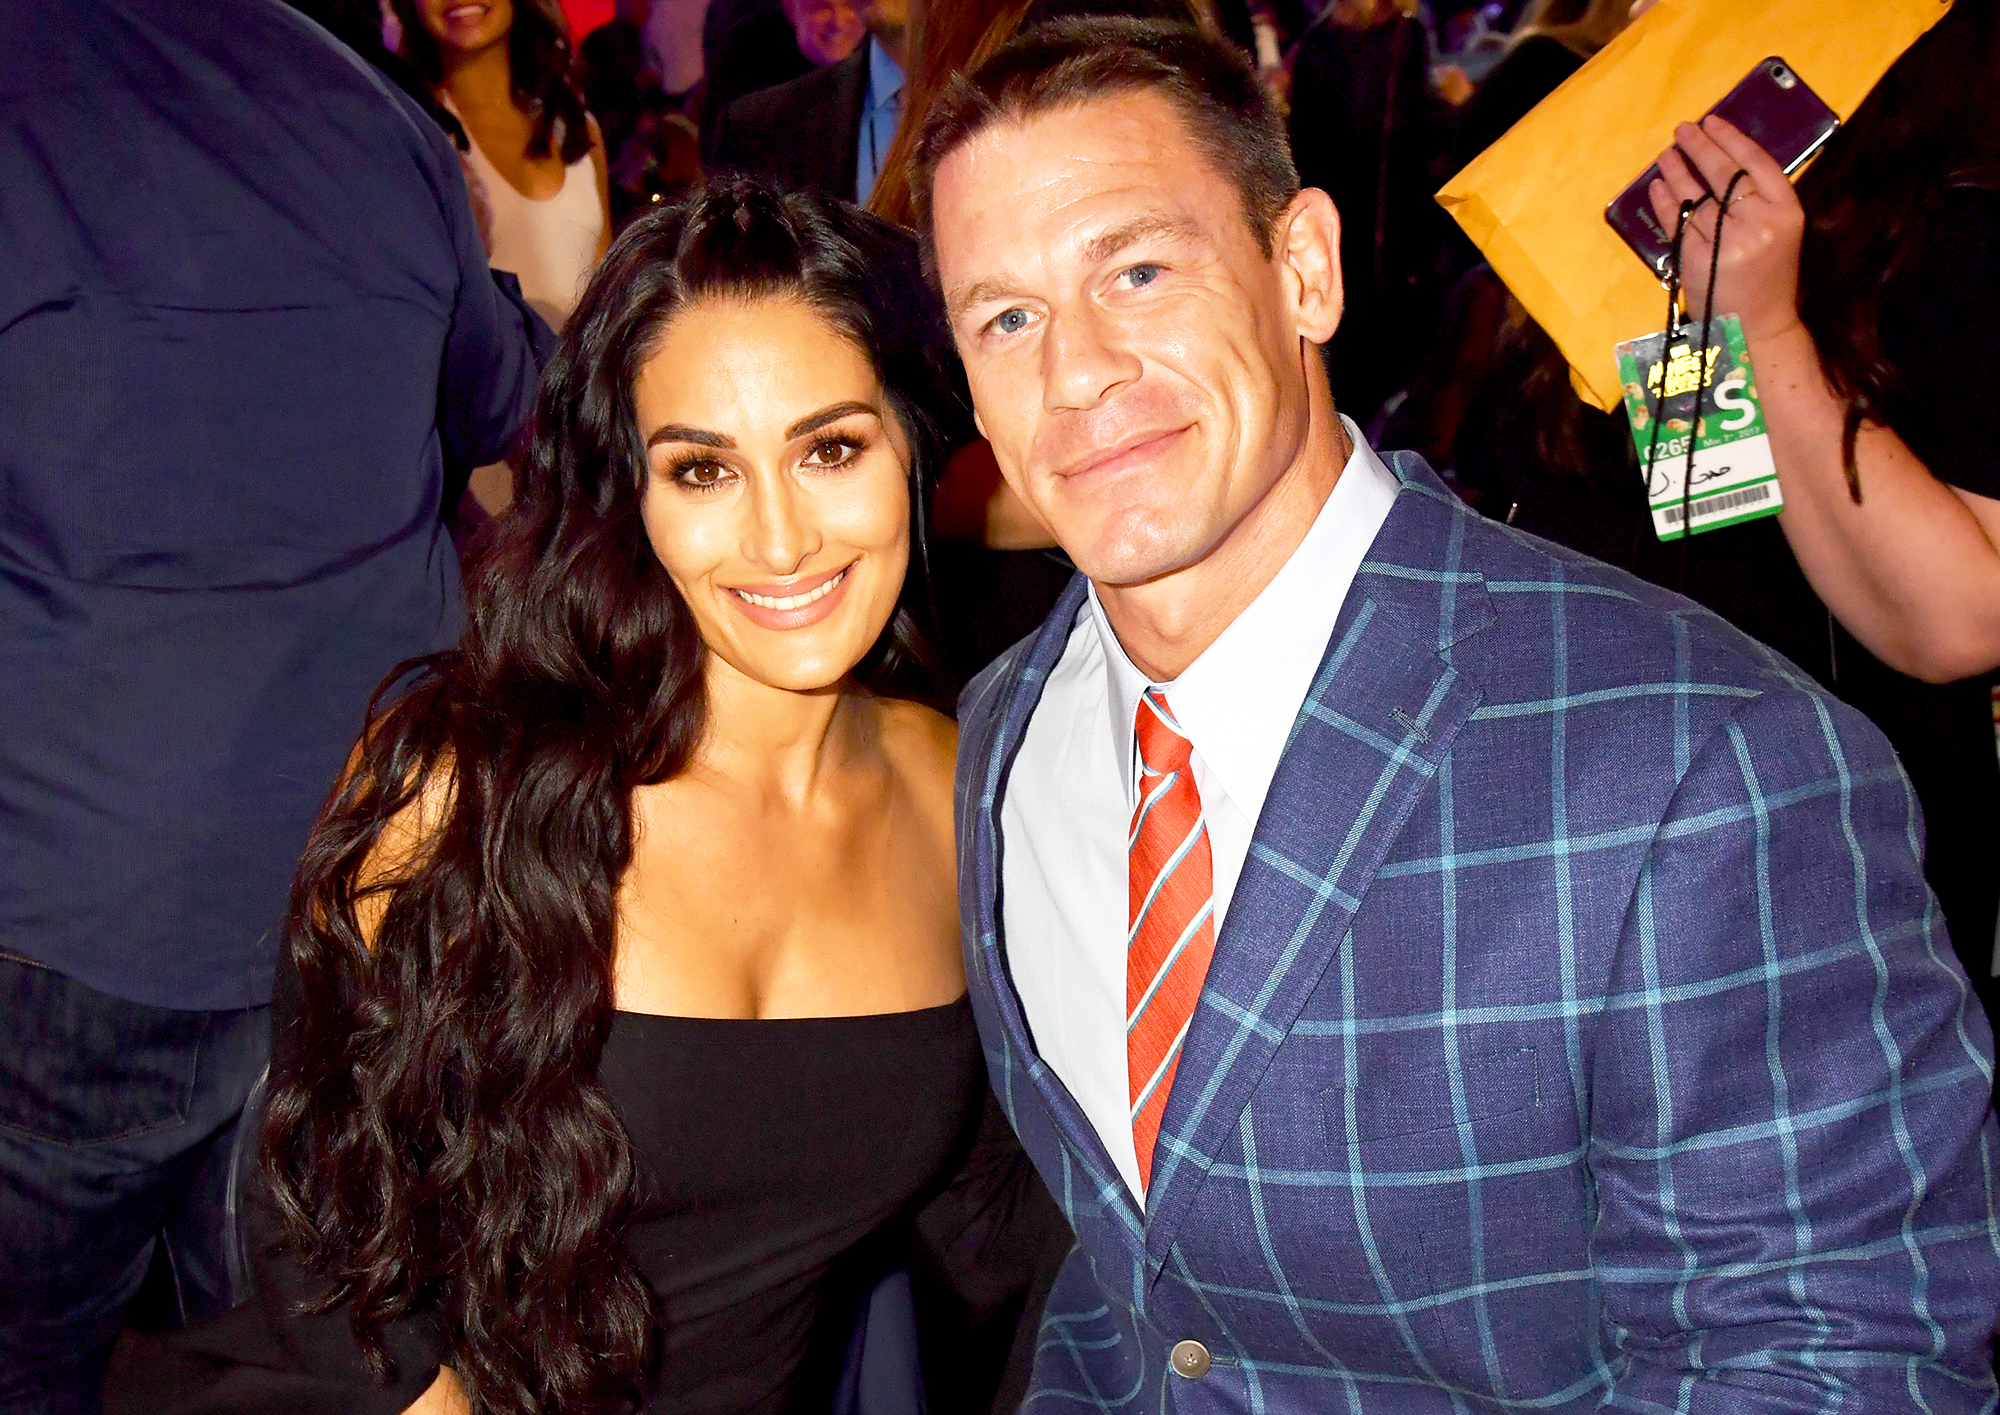 John Cena & Nikki Bella Announce Breakup, Essentially Chokehold Our Hearts